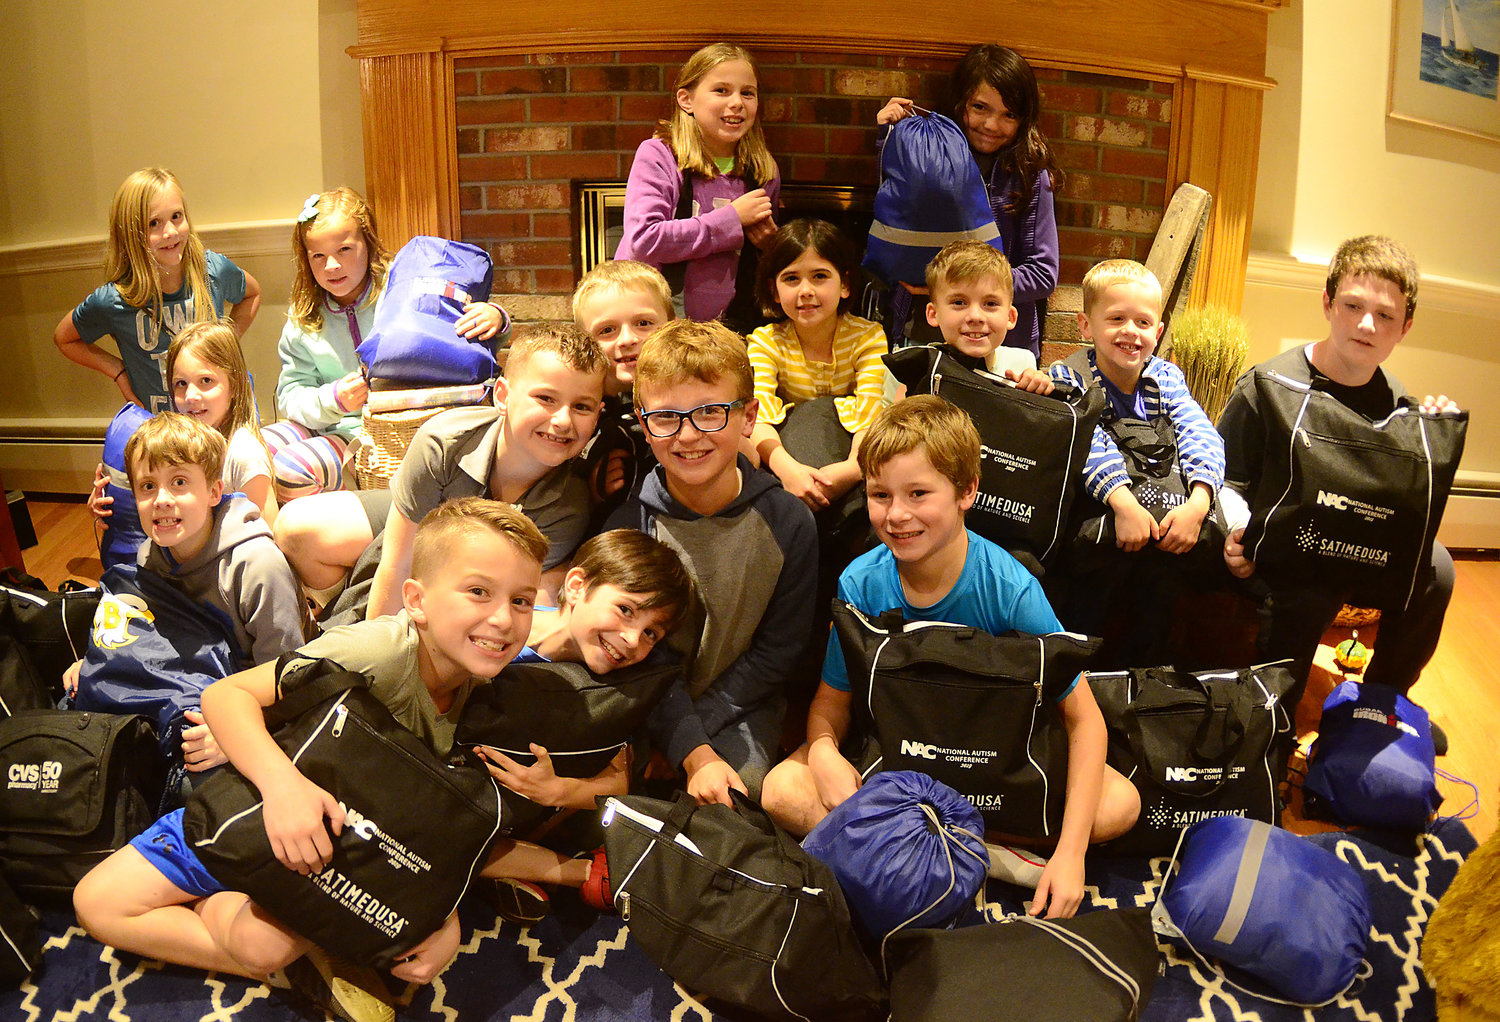 A group of Barrington children assembled care packs for homeless veterans recently. Barrington's Tinsley Kampmier-Williamson, who founded a charity called The Care Pack Project RI, organized the care pack assembly event.